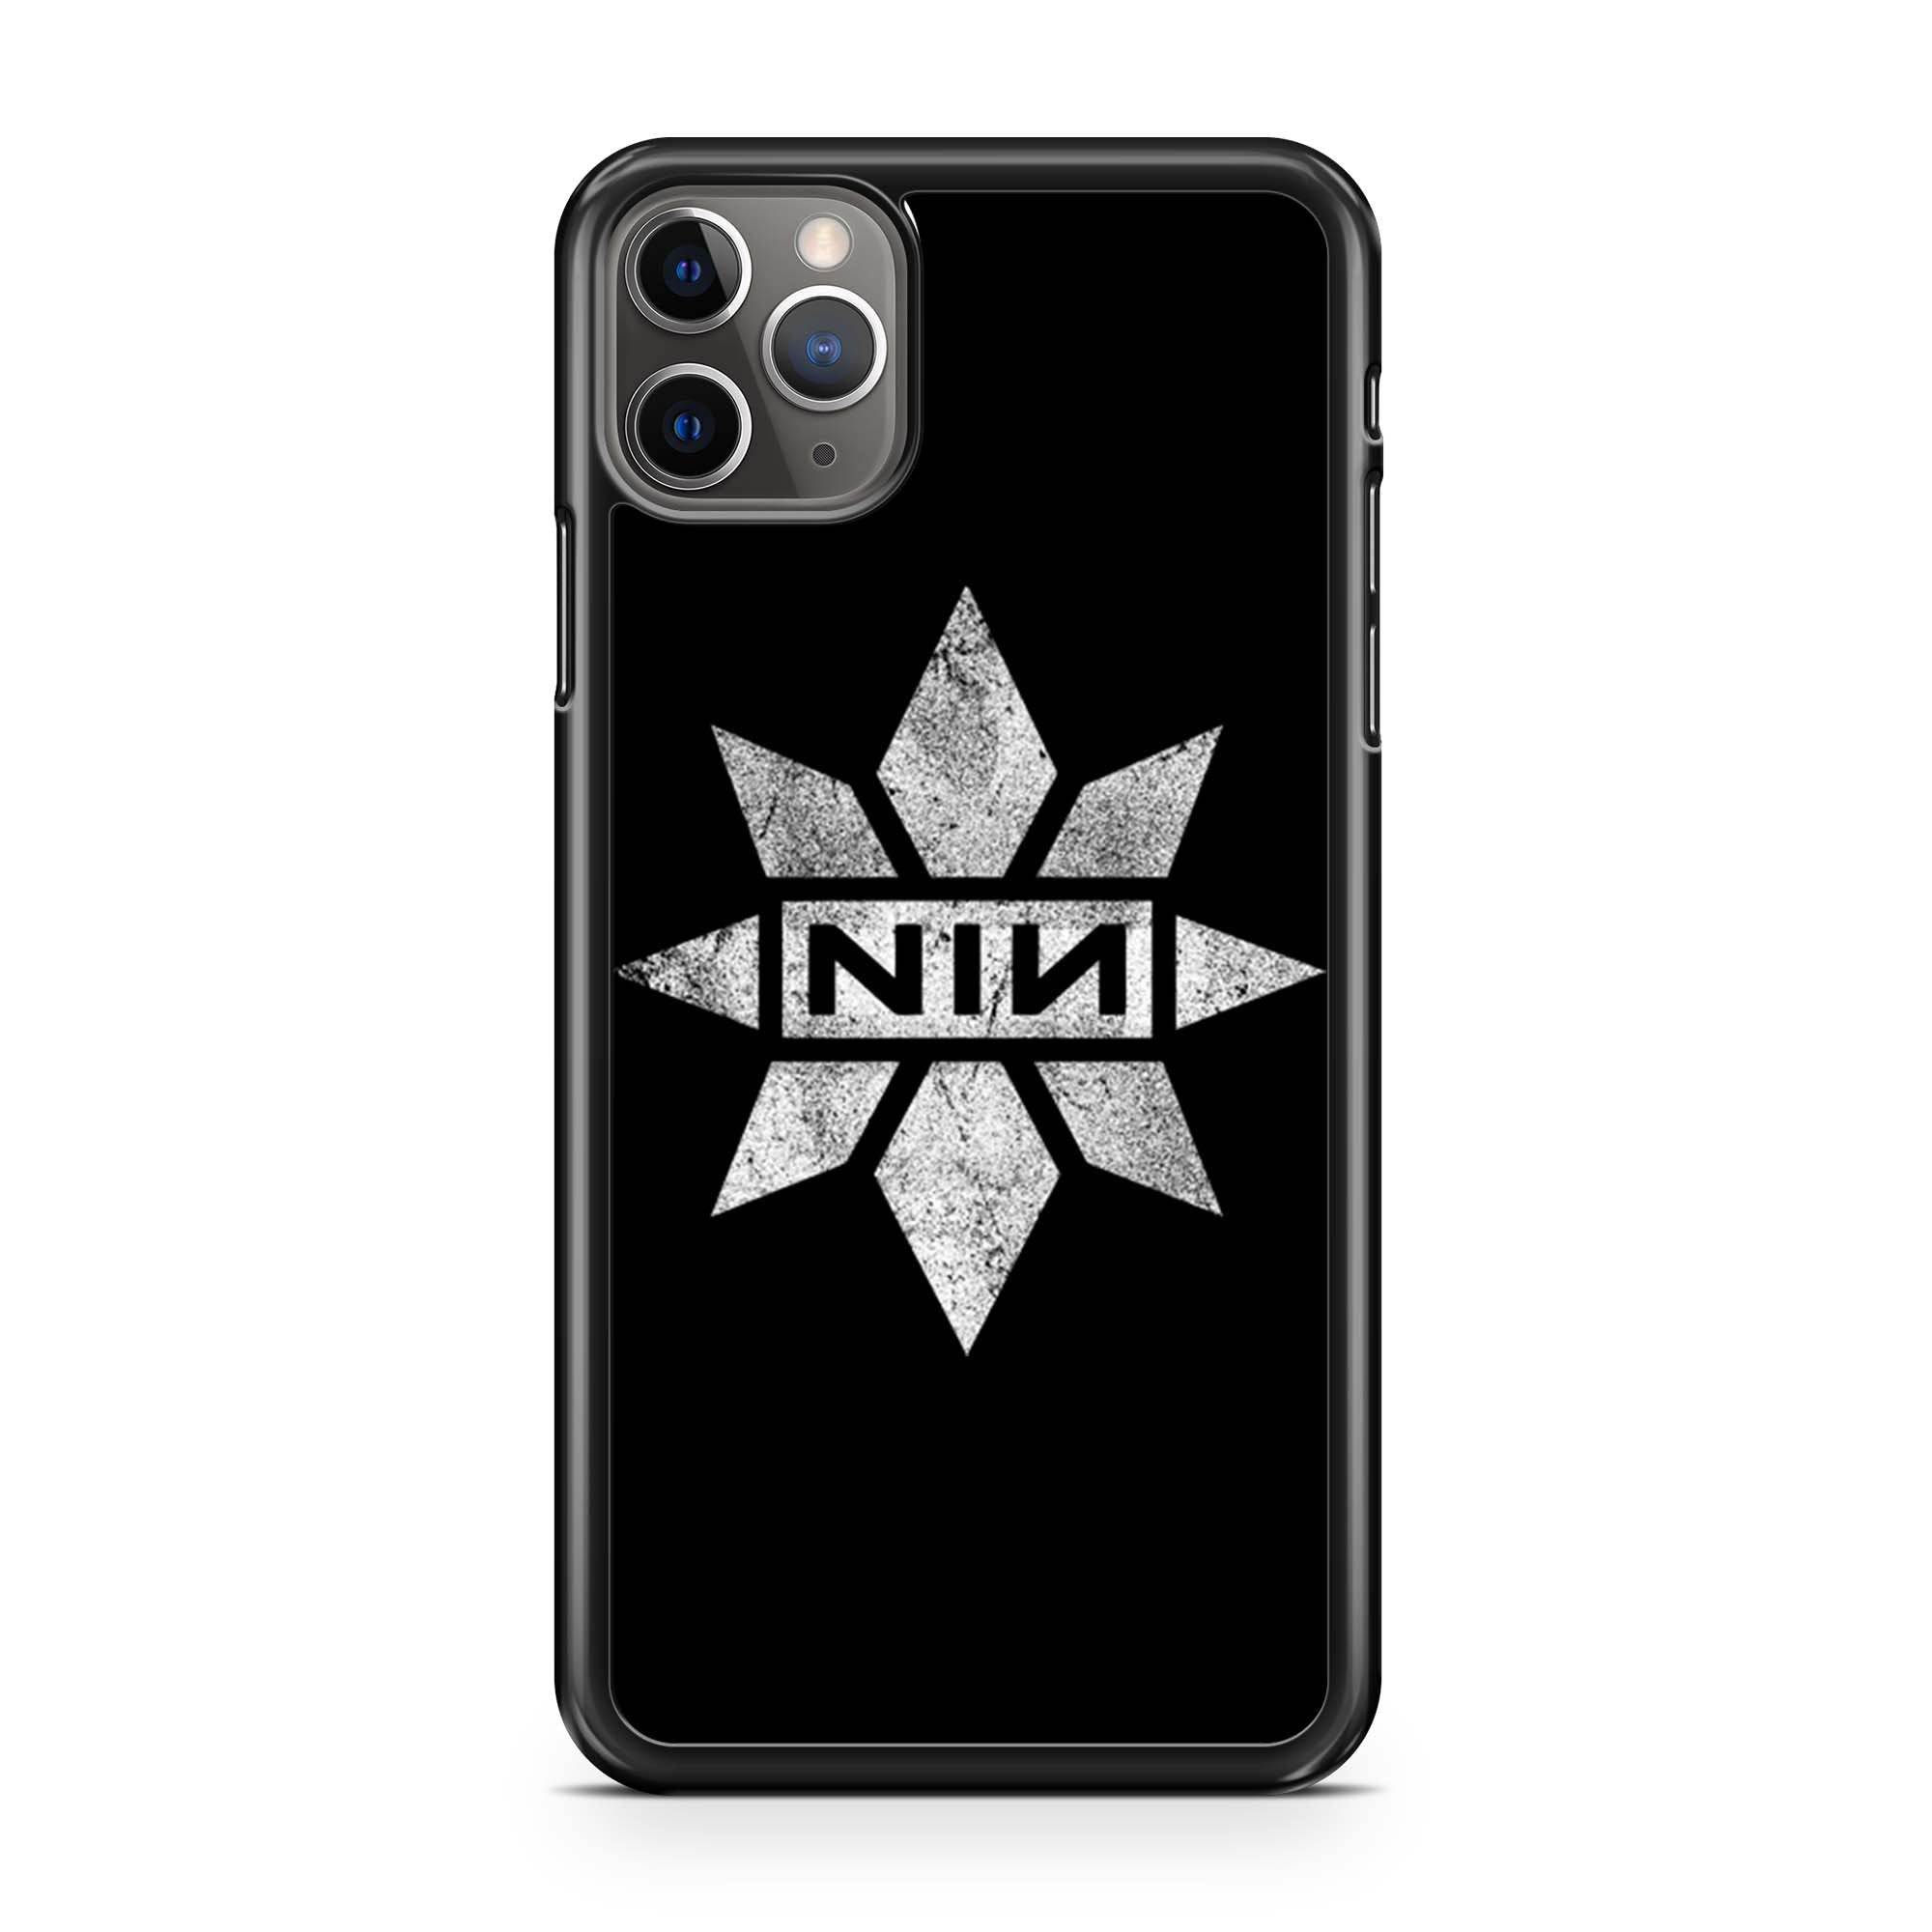 Nin Marvel Grunge Logo iPhone 11 Pro Max Case